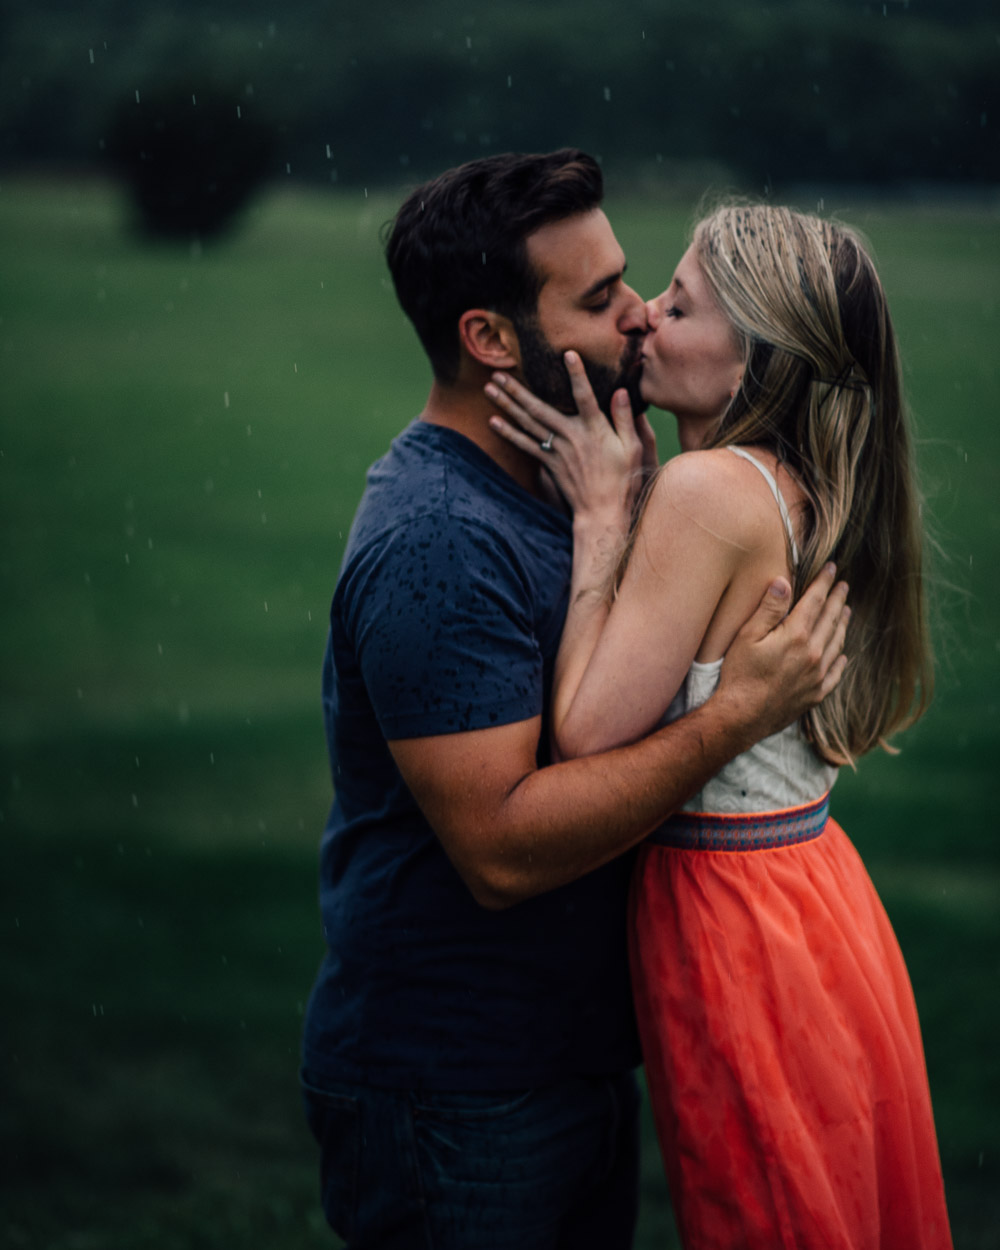 couple-kissing-in-rain Becky + Alexander's Epic Engagement Session